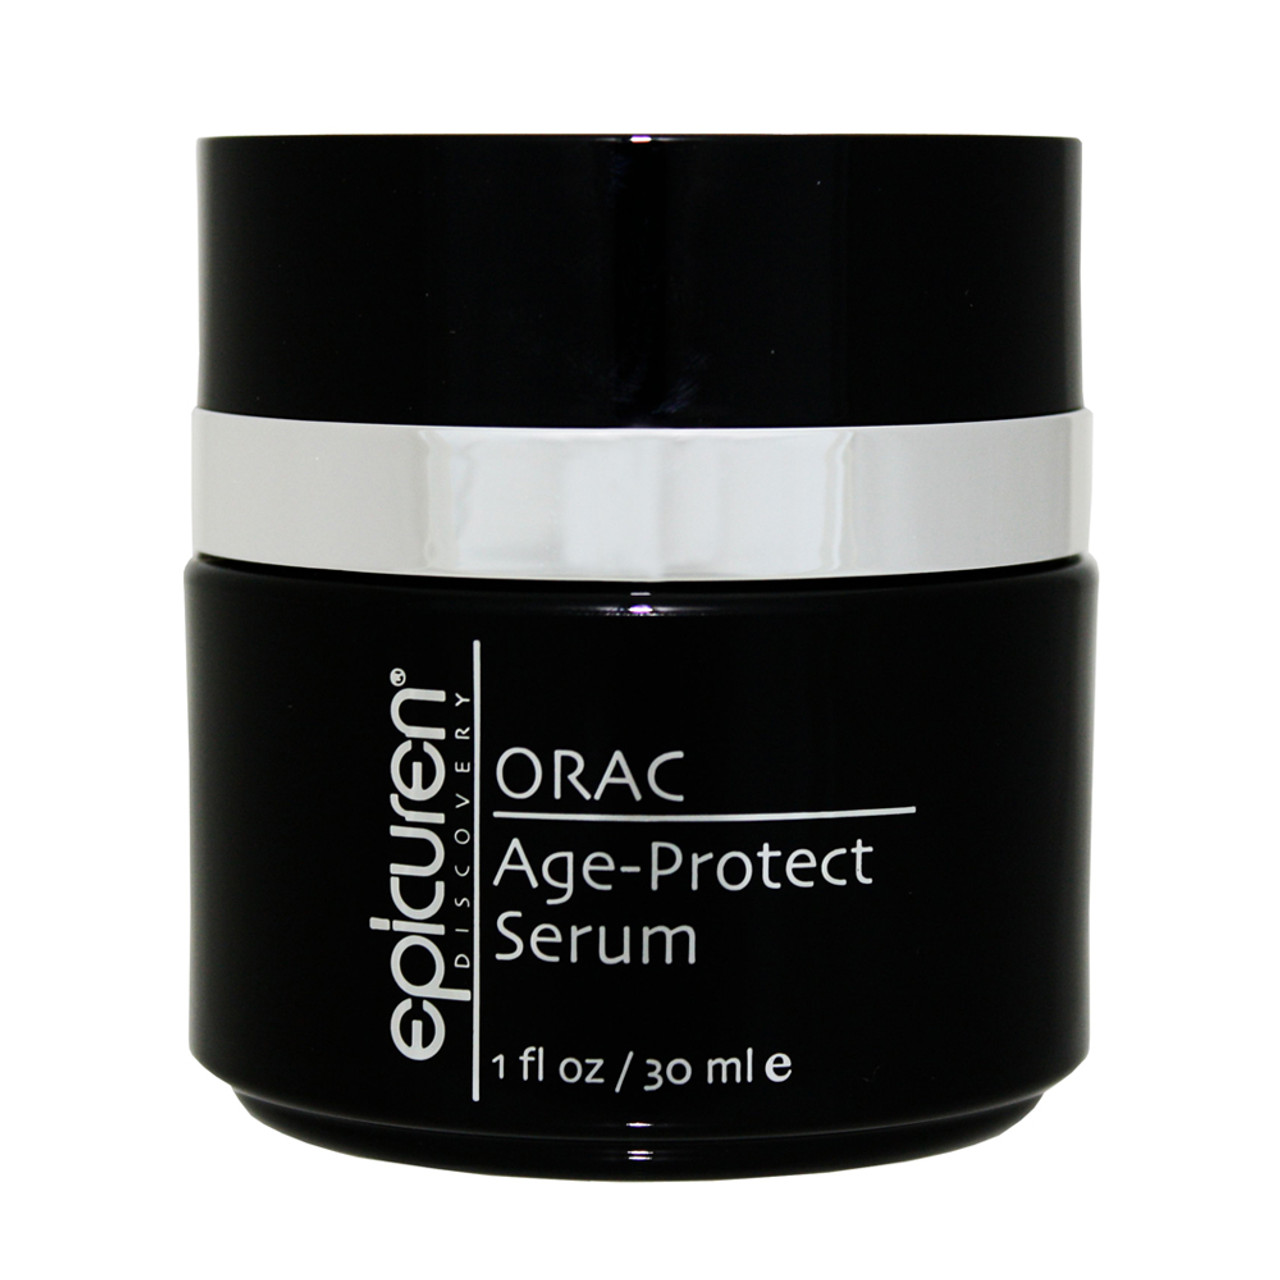 epicuren Discovery ORAC Age-Protect Serum